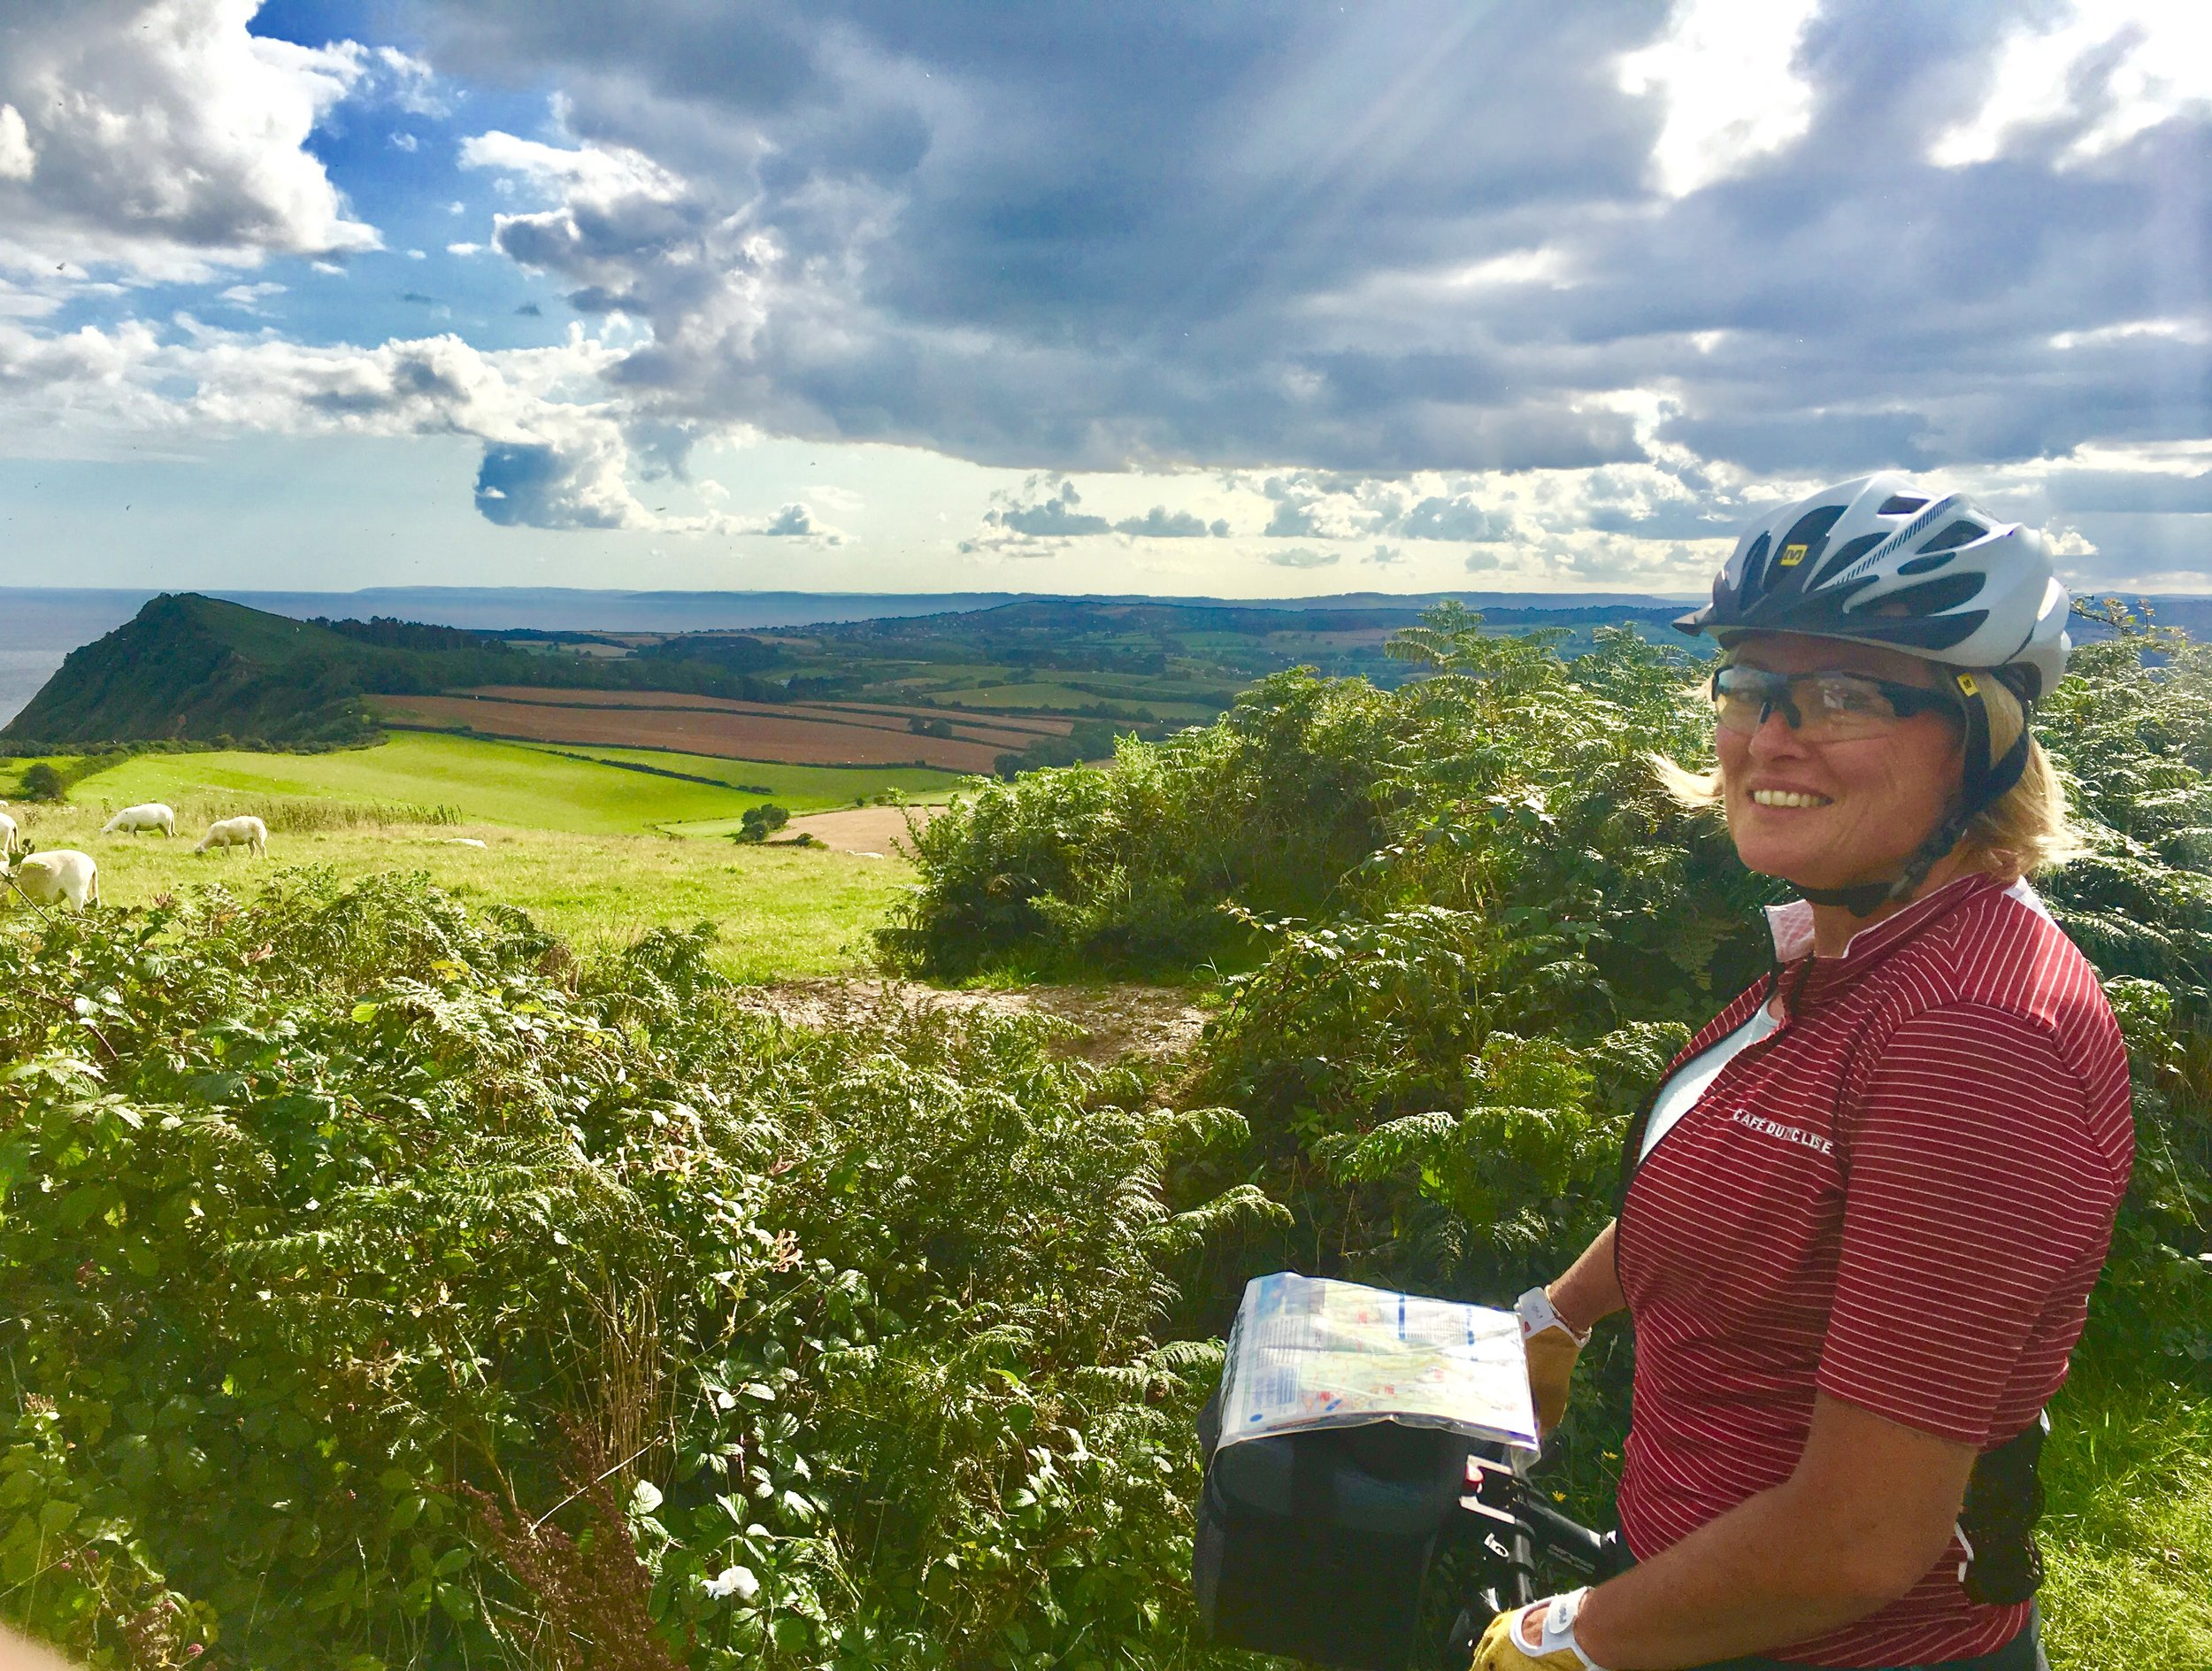 Map-tastic at the top of Peak Hill, Sidmouth